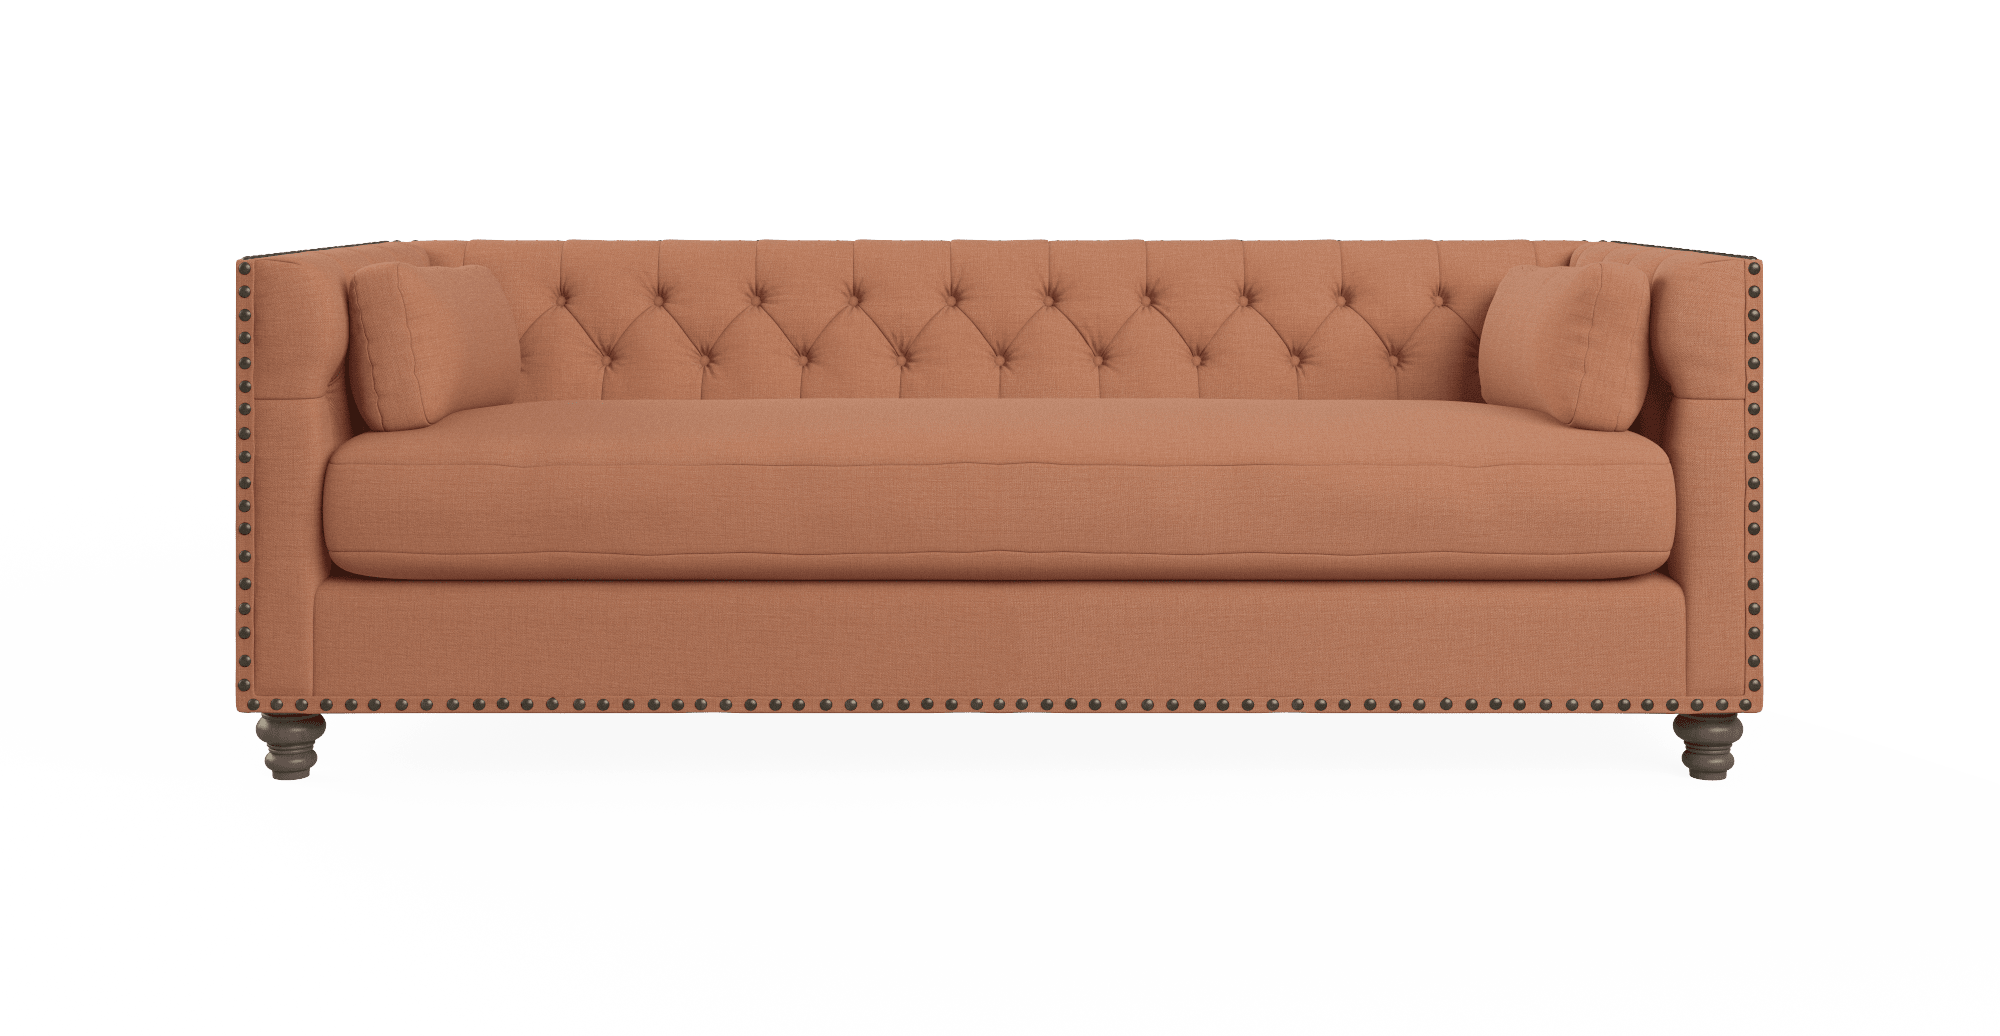 Chesterfield sofa 0 interest for Sofa 0 interest free credit